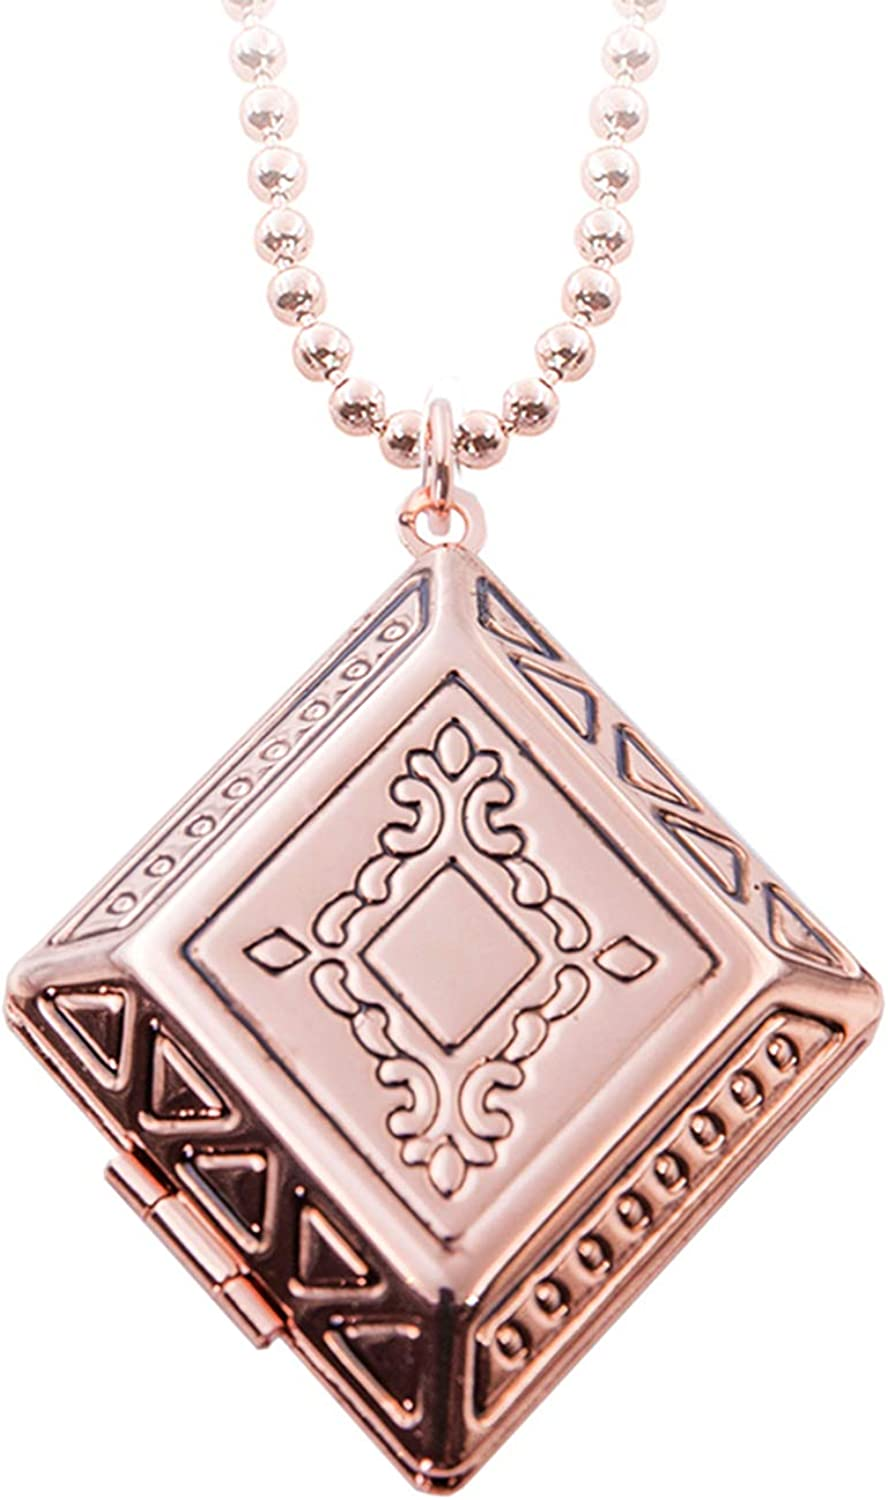 Retro Vintage Living Memory Max 72% OFF Locket Holds Pictures Special price That Necklace